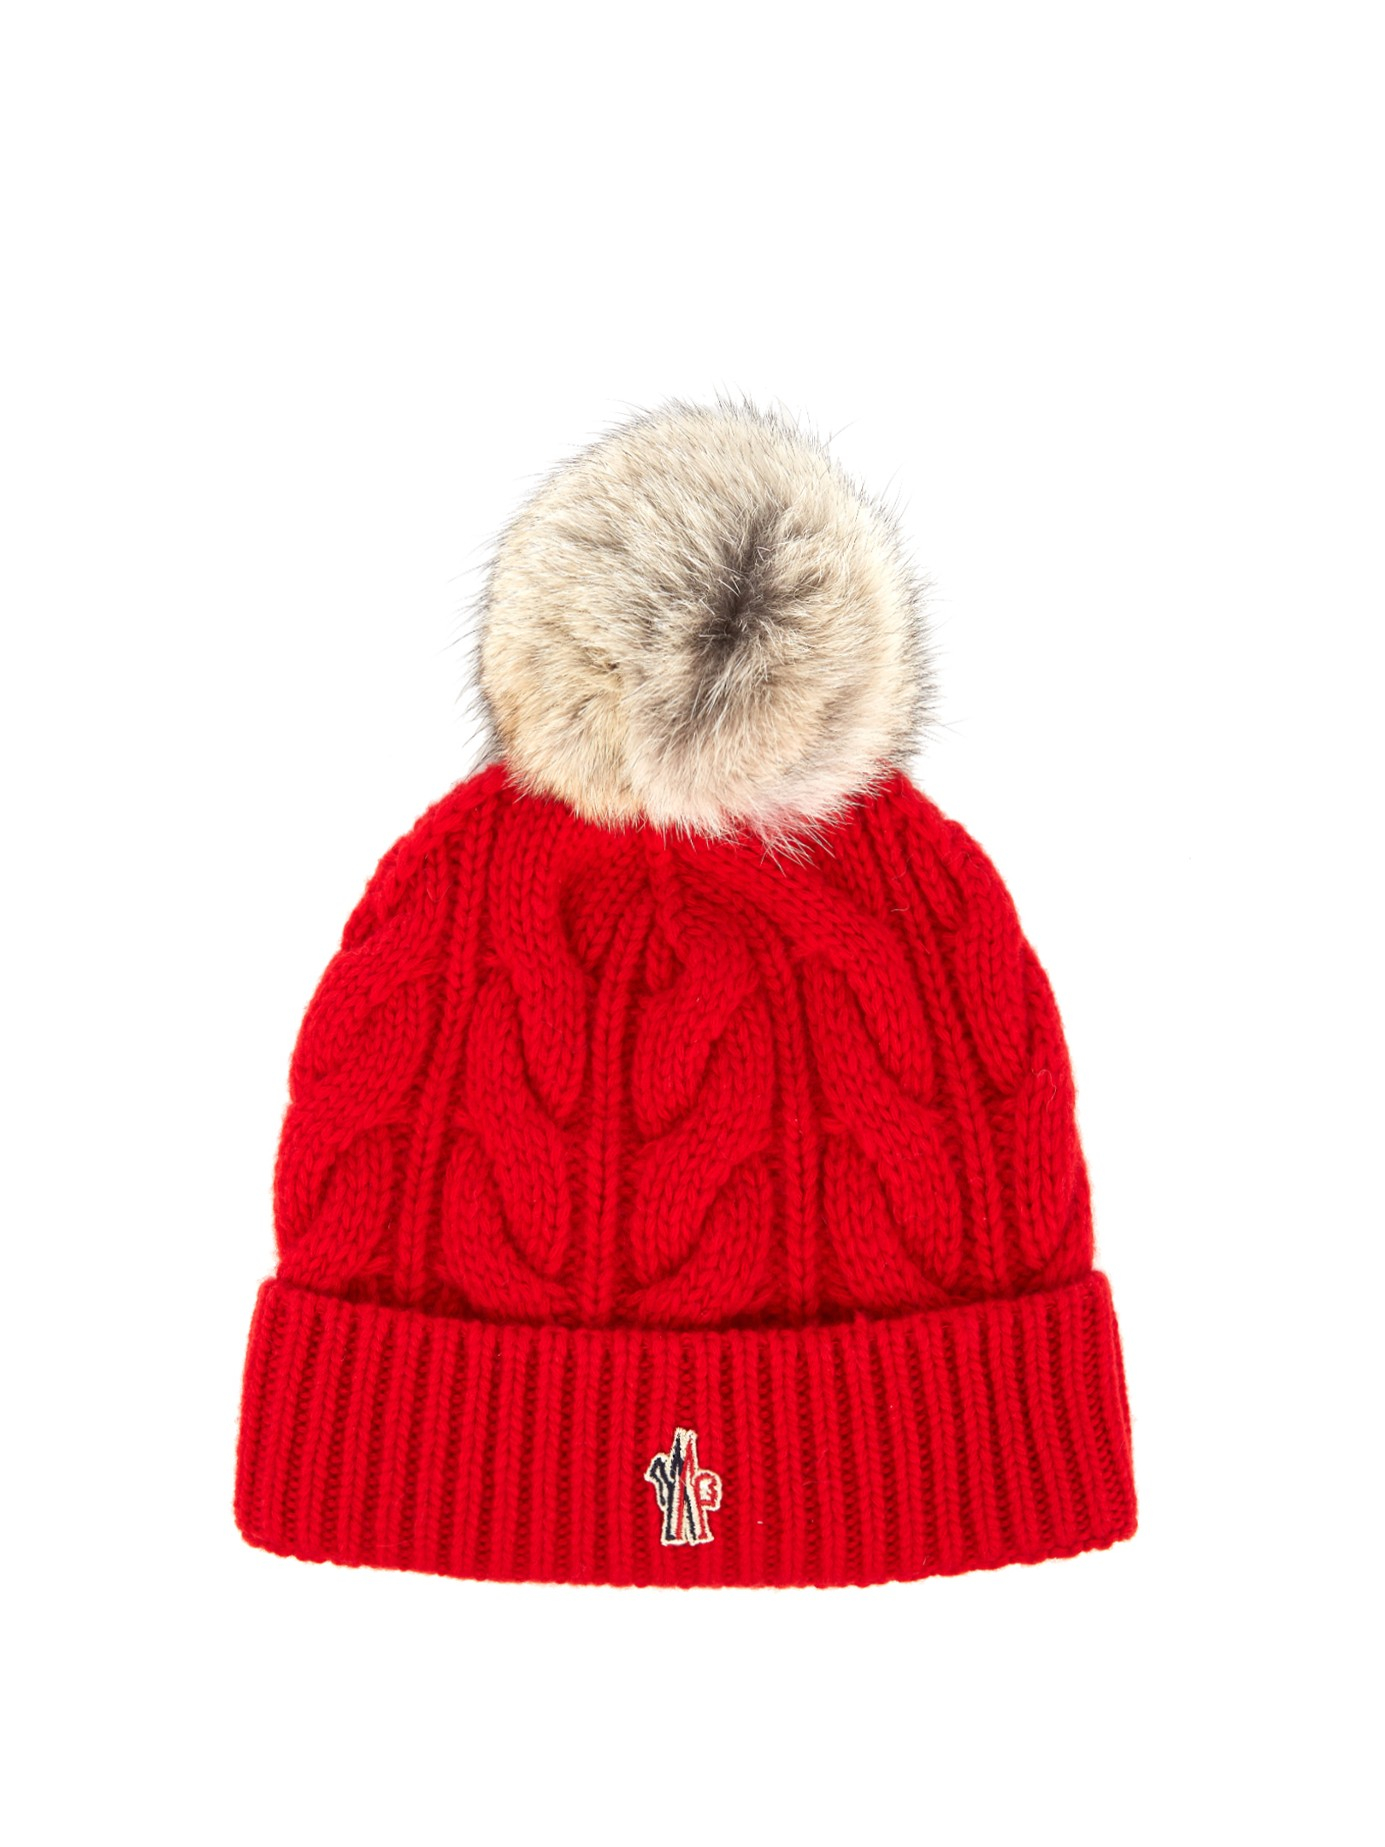 Lyst - Moncler Grenoble Fur-pompom Knitted Beanie Hat in Red 870553478b29